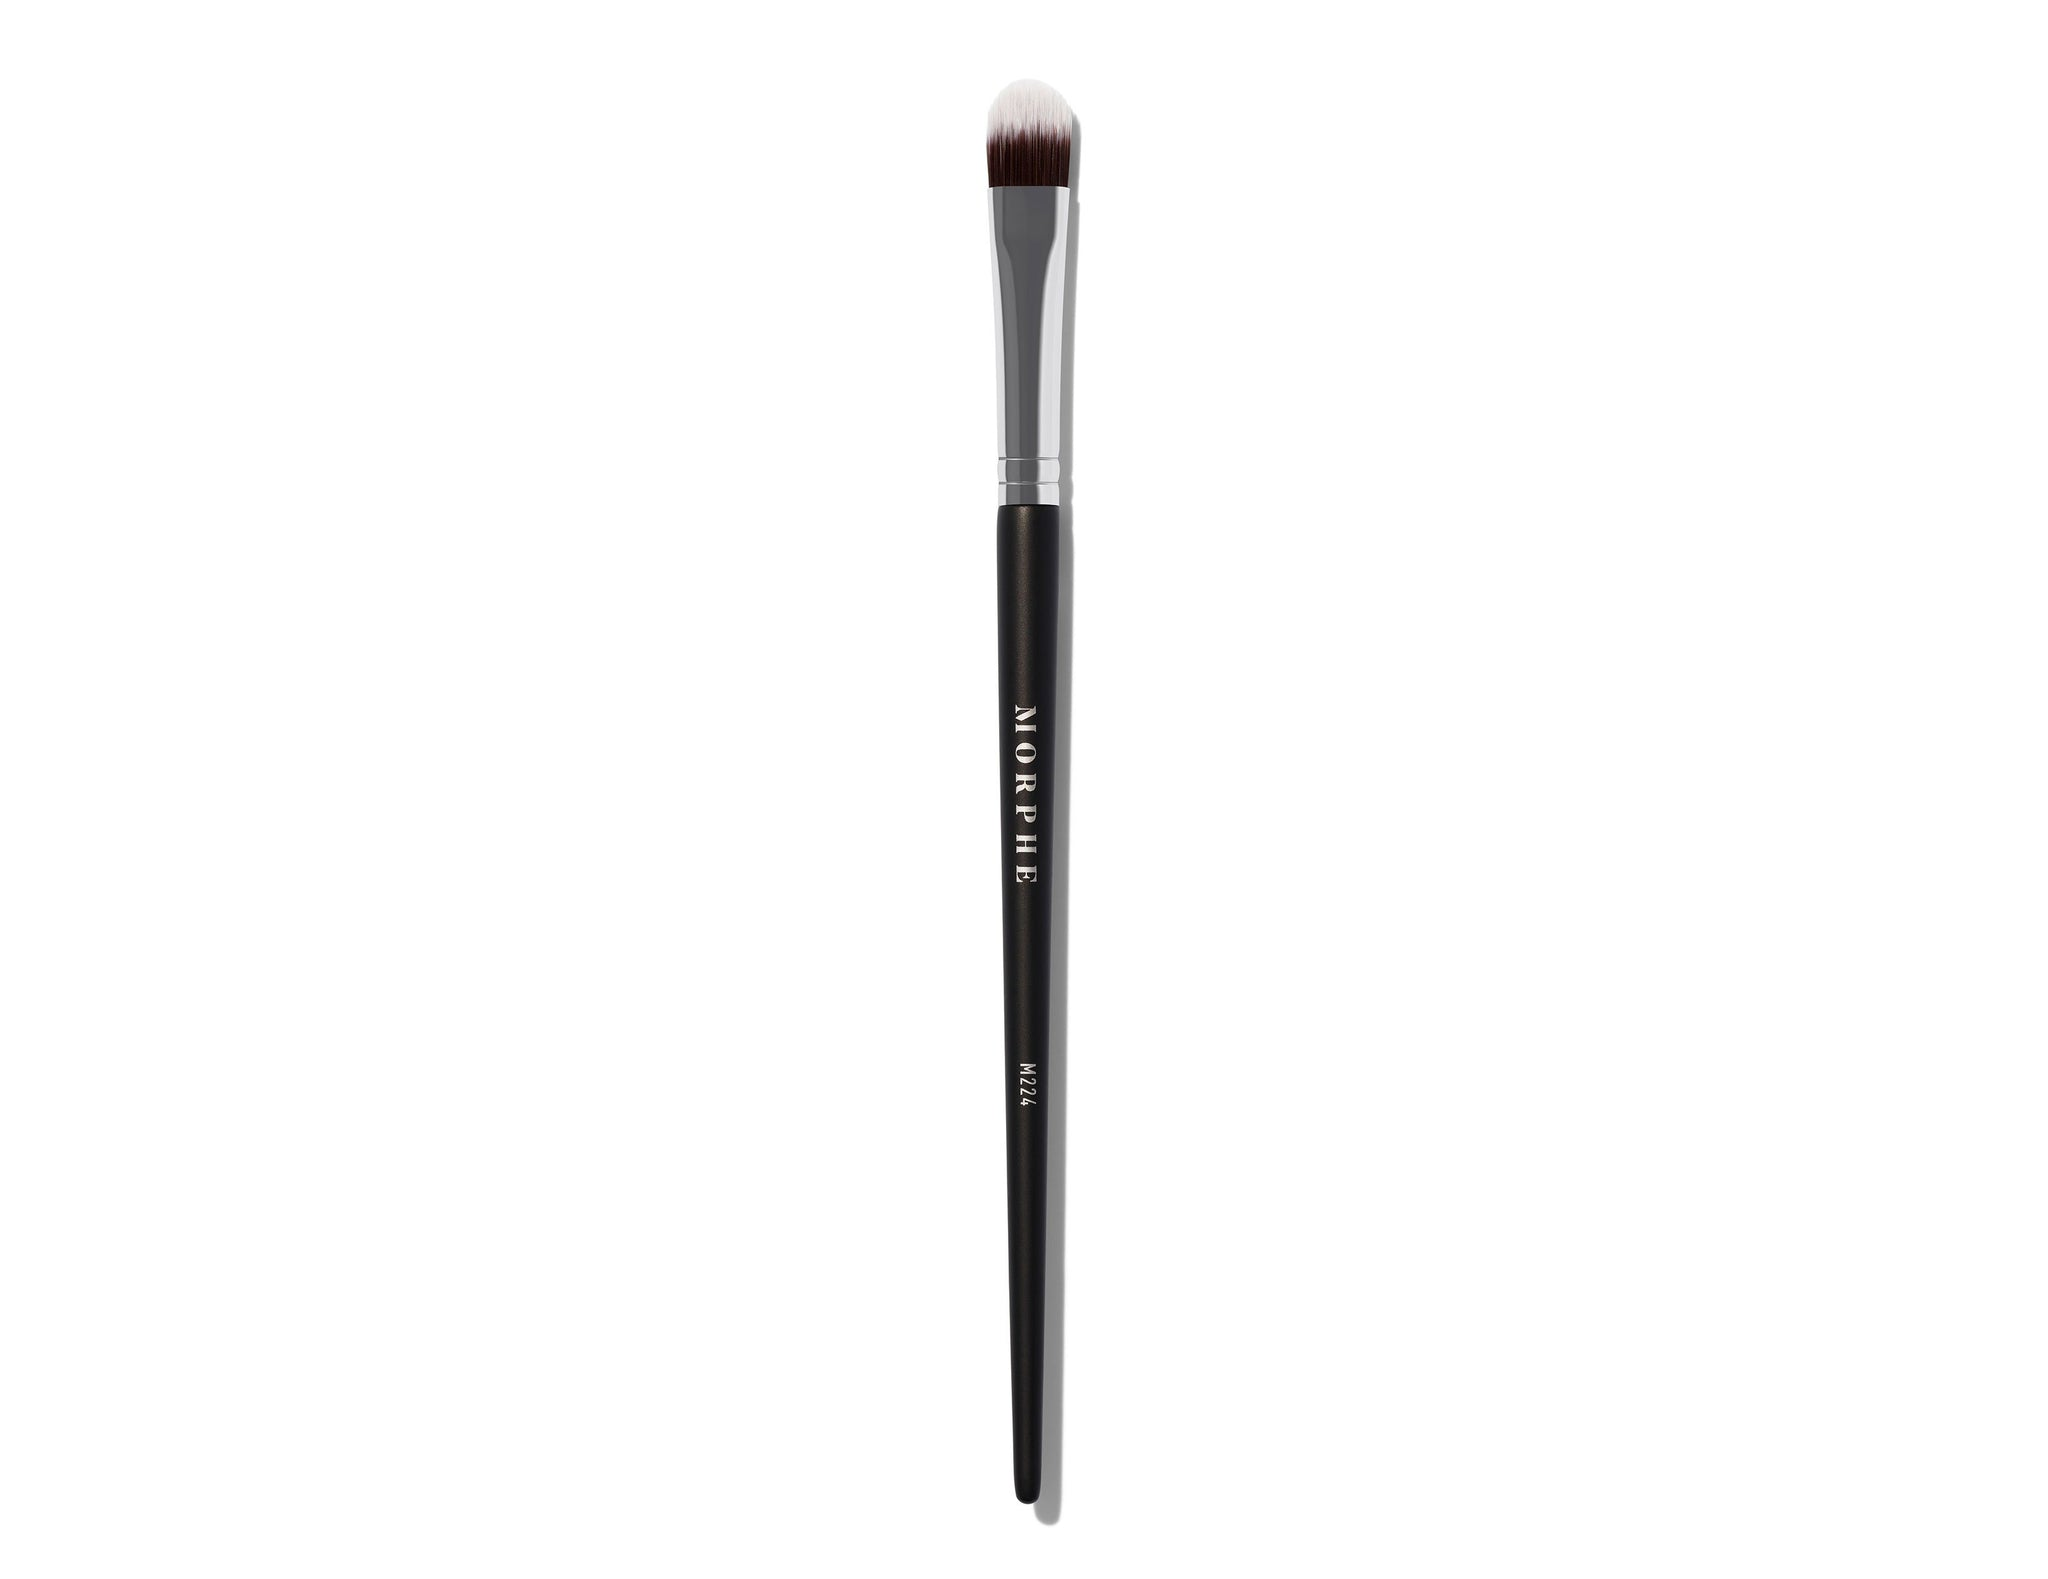 MORPHE M224 - OVAL CAMOUFLAGE BRUSH